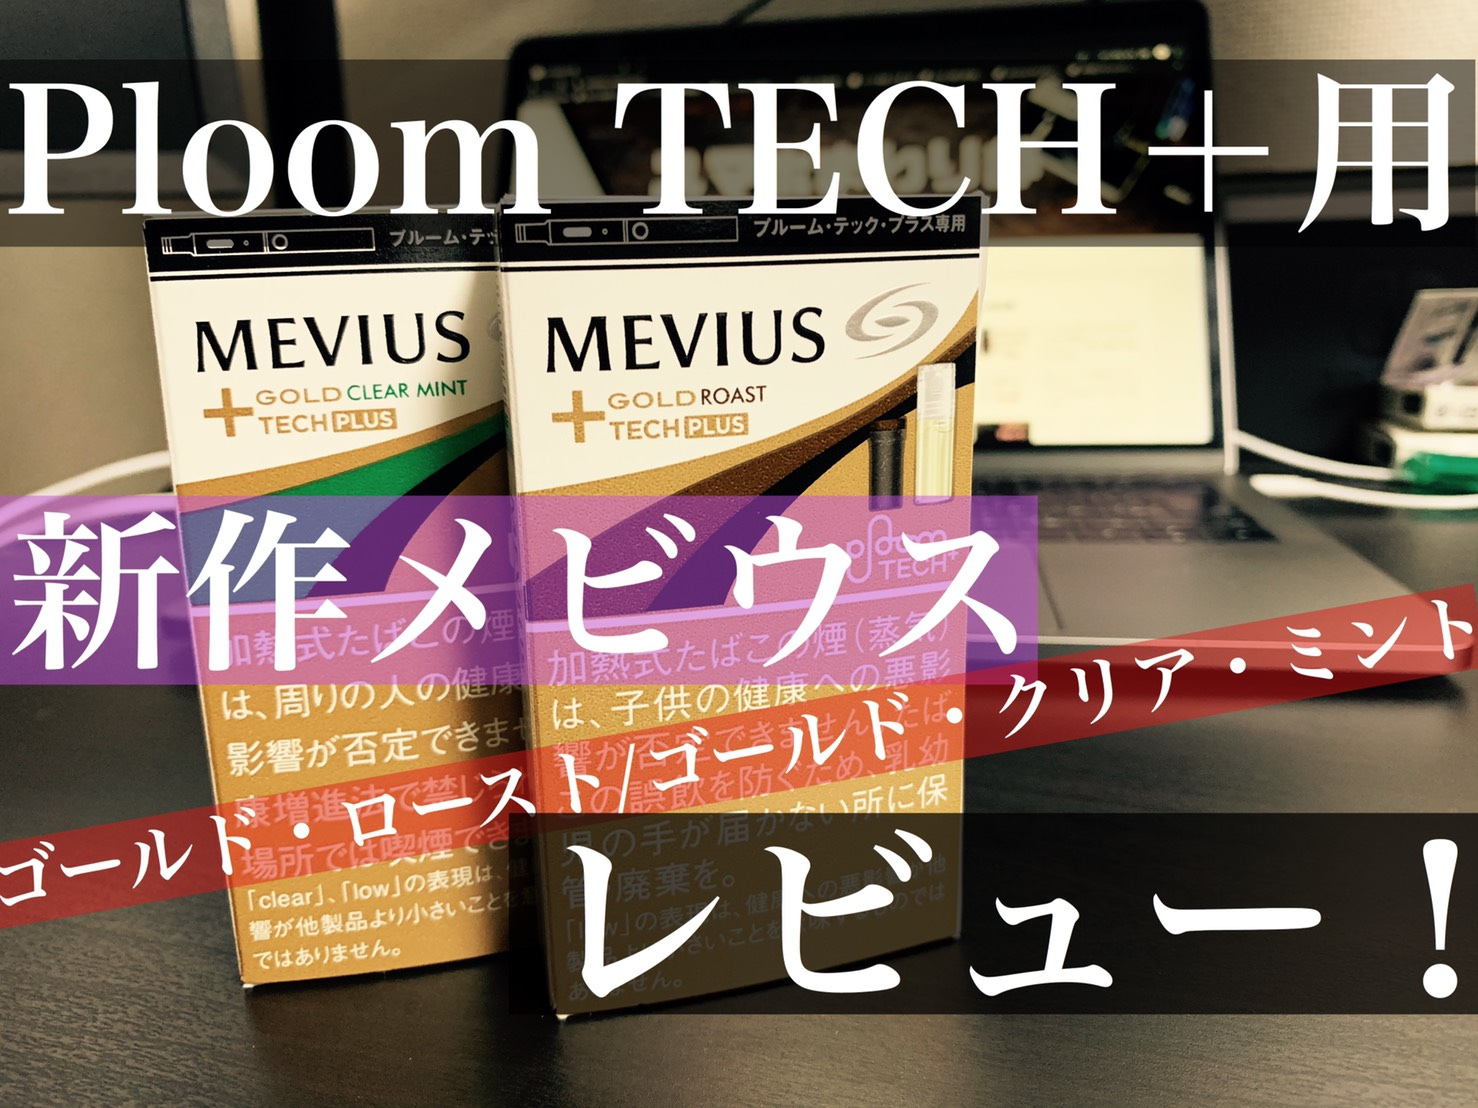 ploomtechplus-new-mevius-capsule-2019-11-2nd eye catch